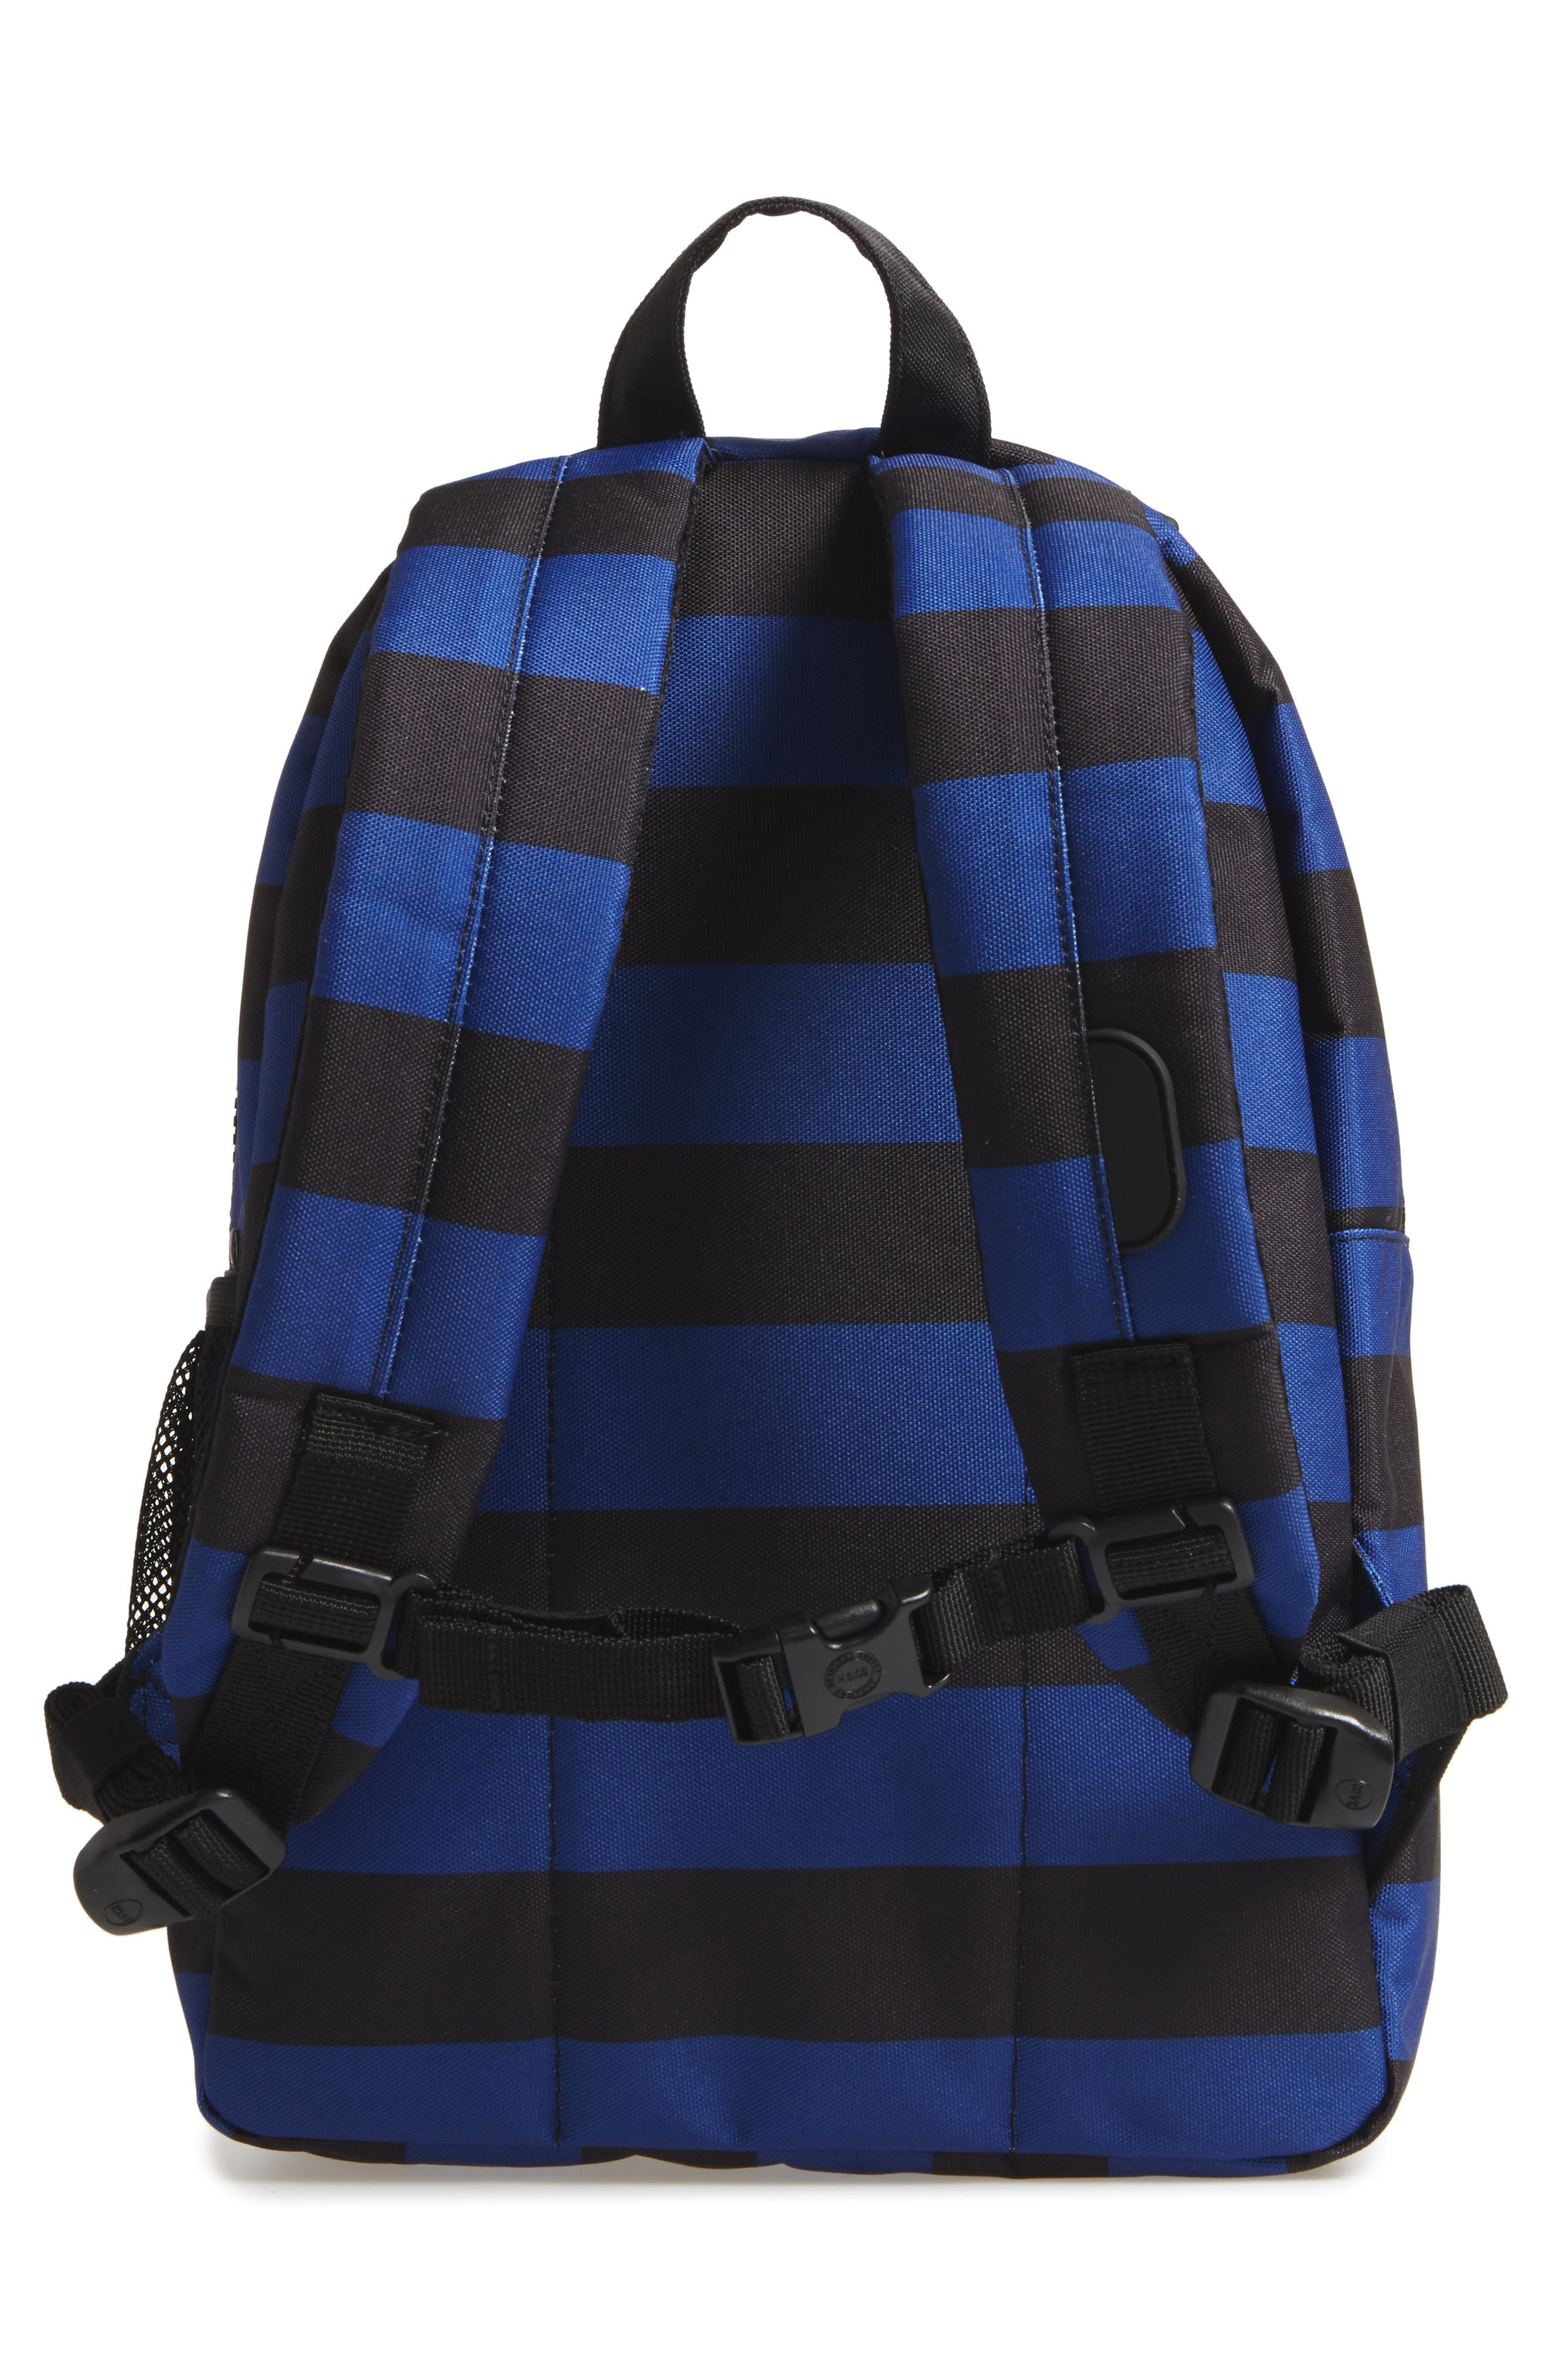 Heritage Youth Backpack,                             Alternate thumbnail 2, color,                             001